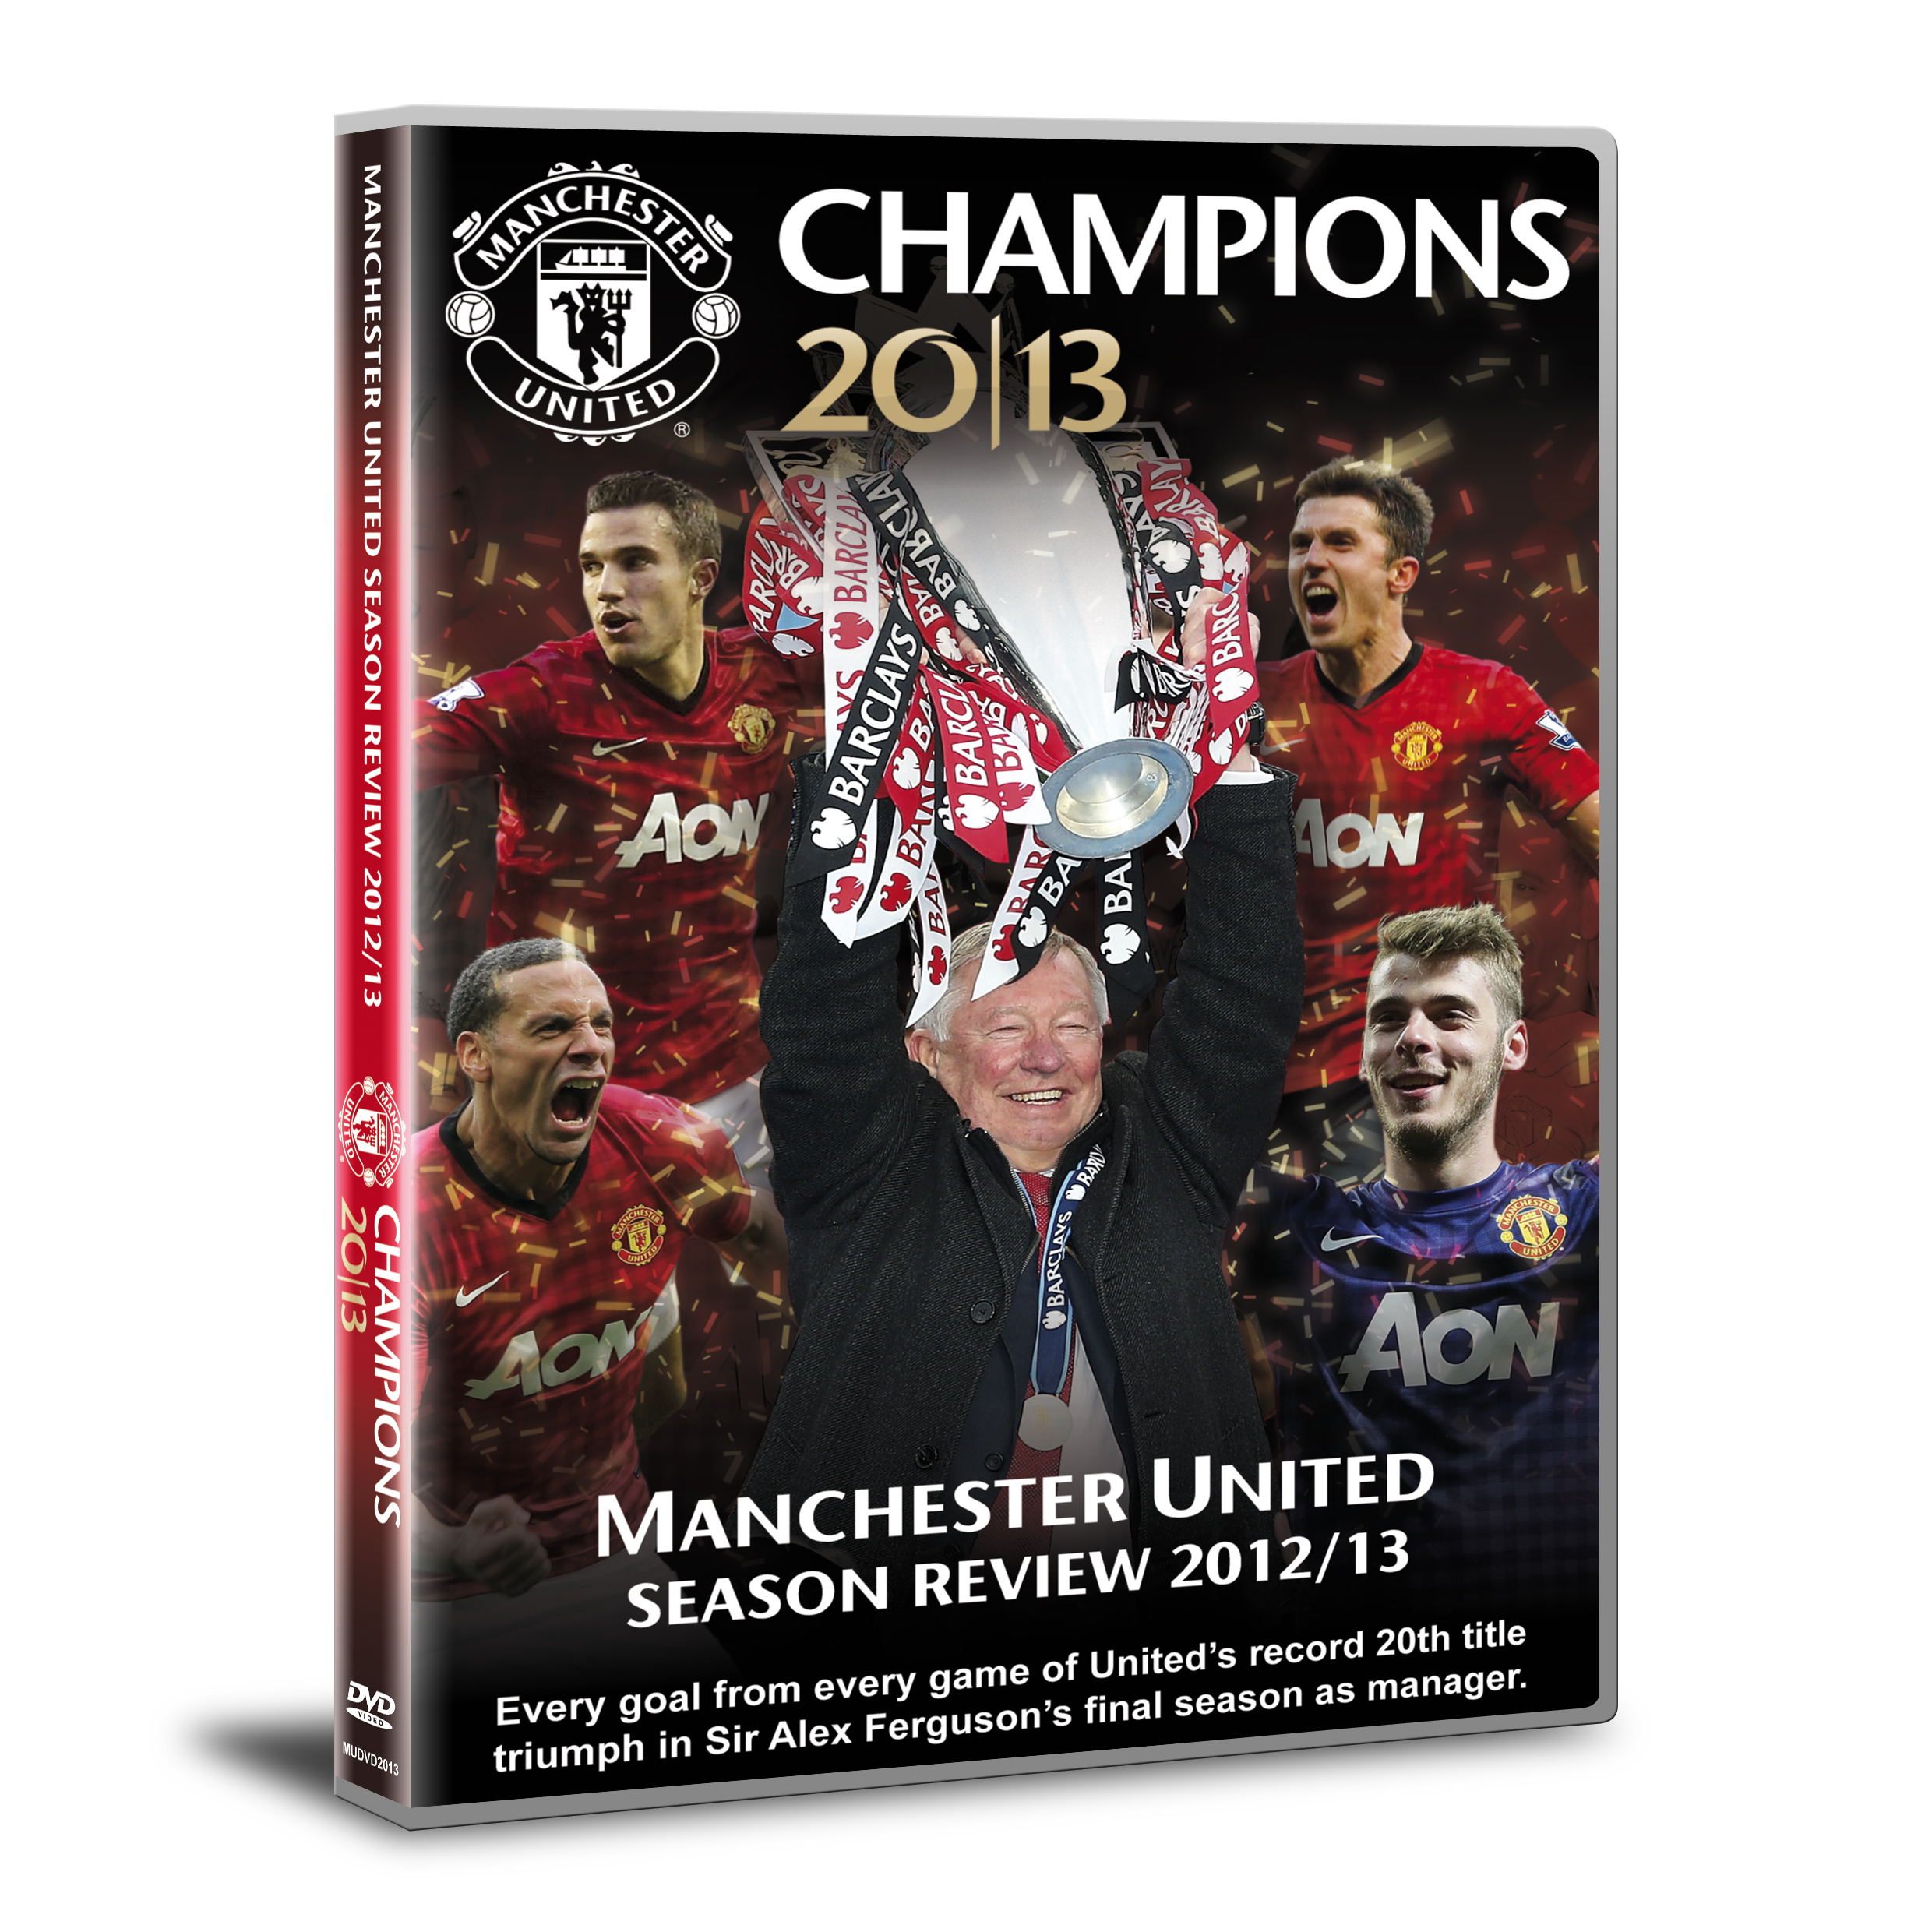 Manchester United 2012/13 Season Review DVD